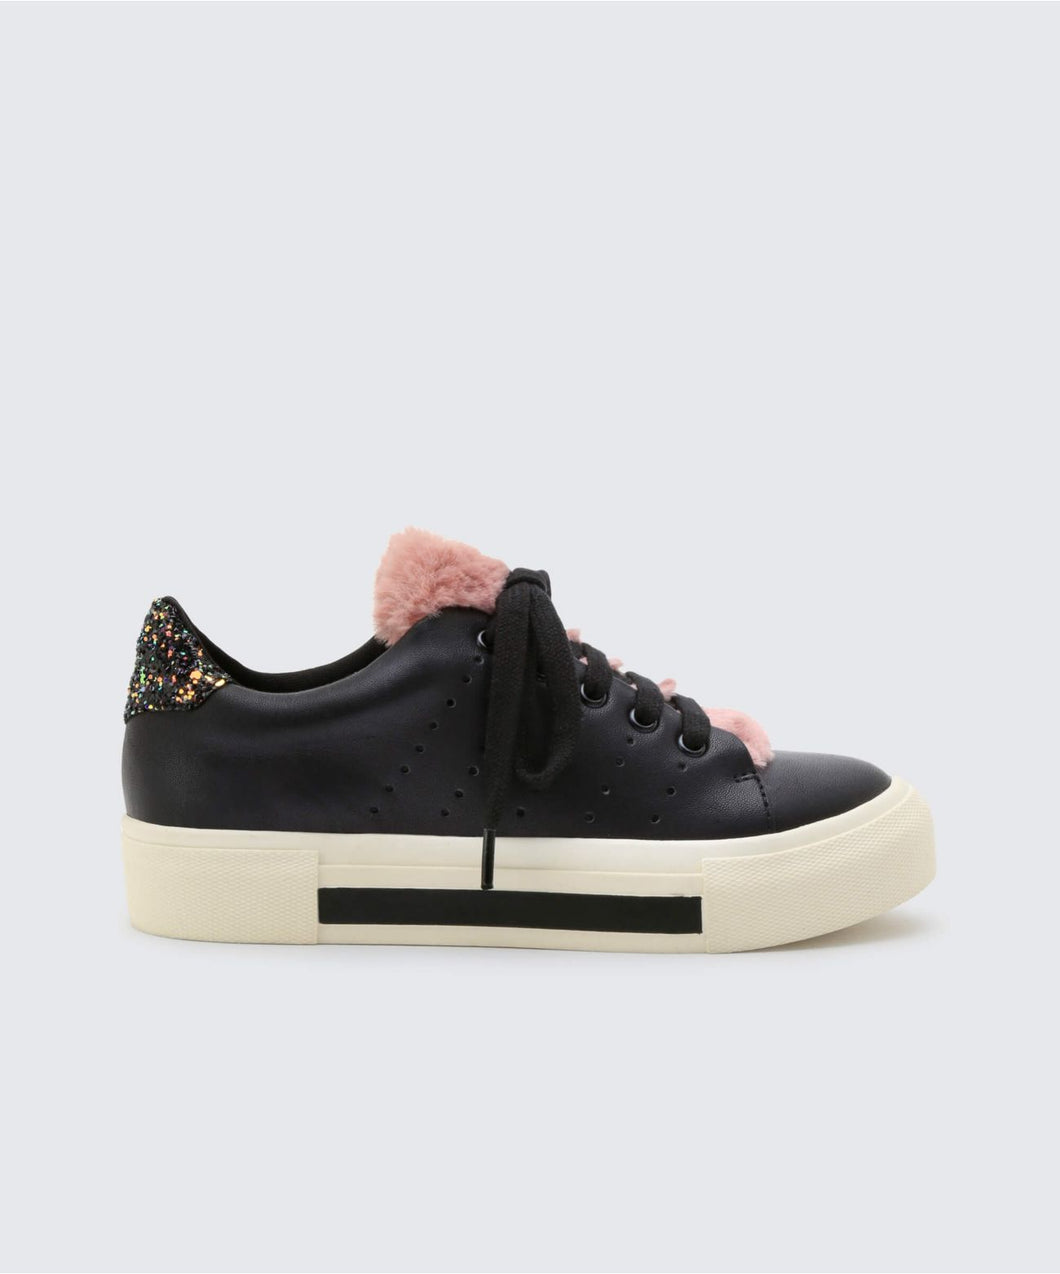 CABEL SNEAKERS BLACK -   Dolce Vita